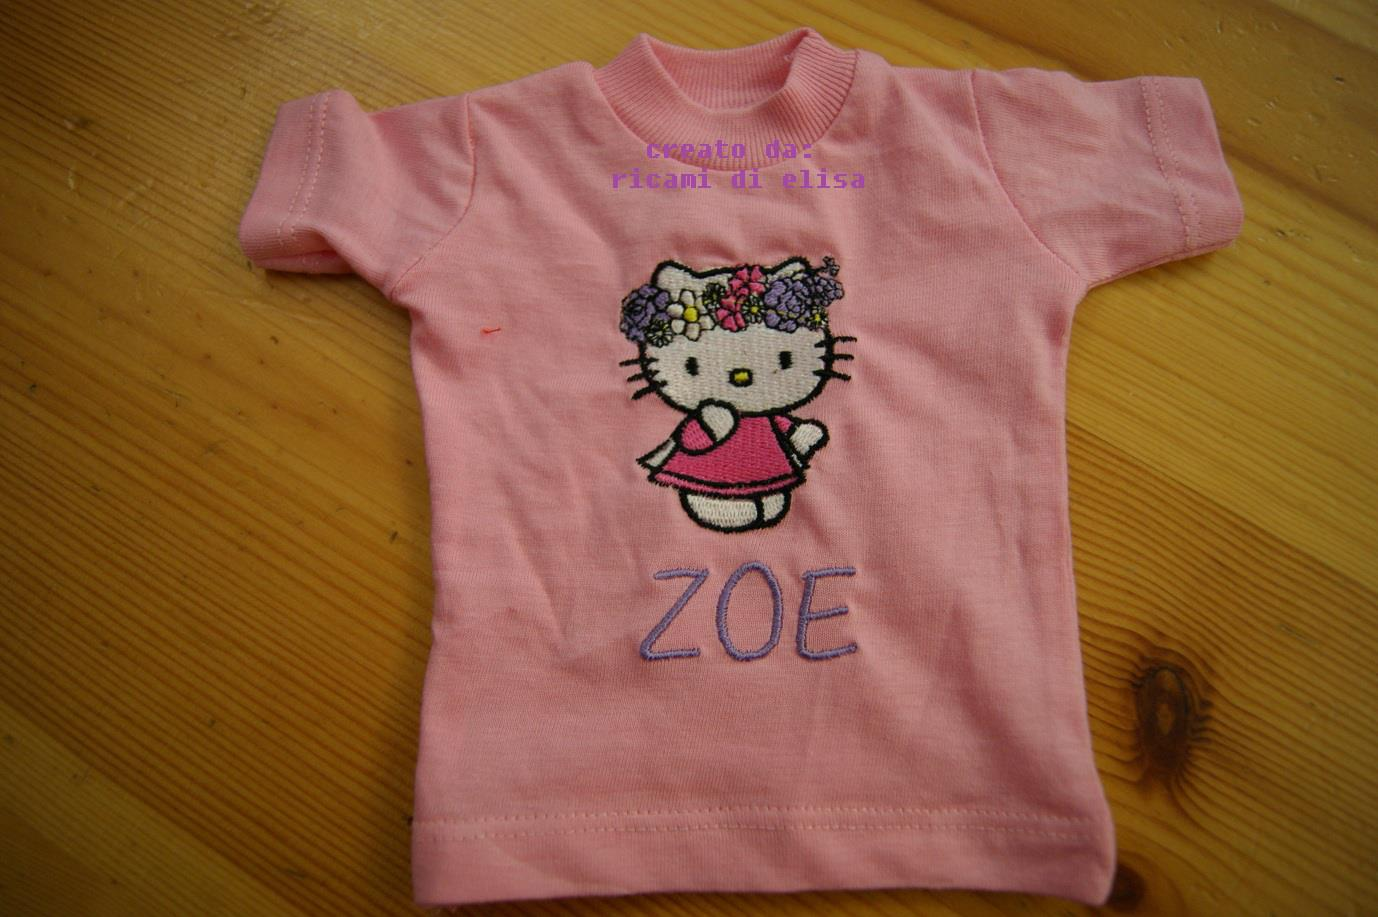 Pink embroidered t-shirt with Hello Kitty Spring on it